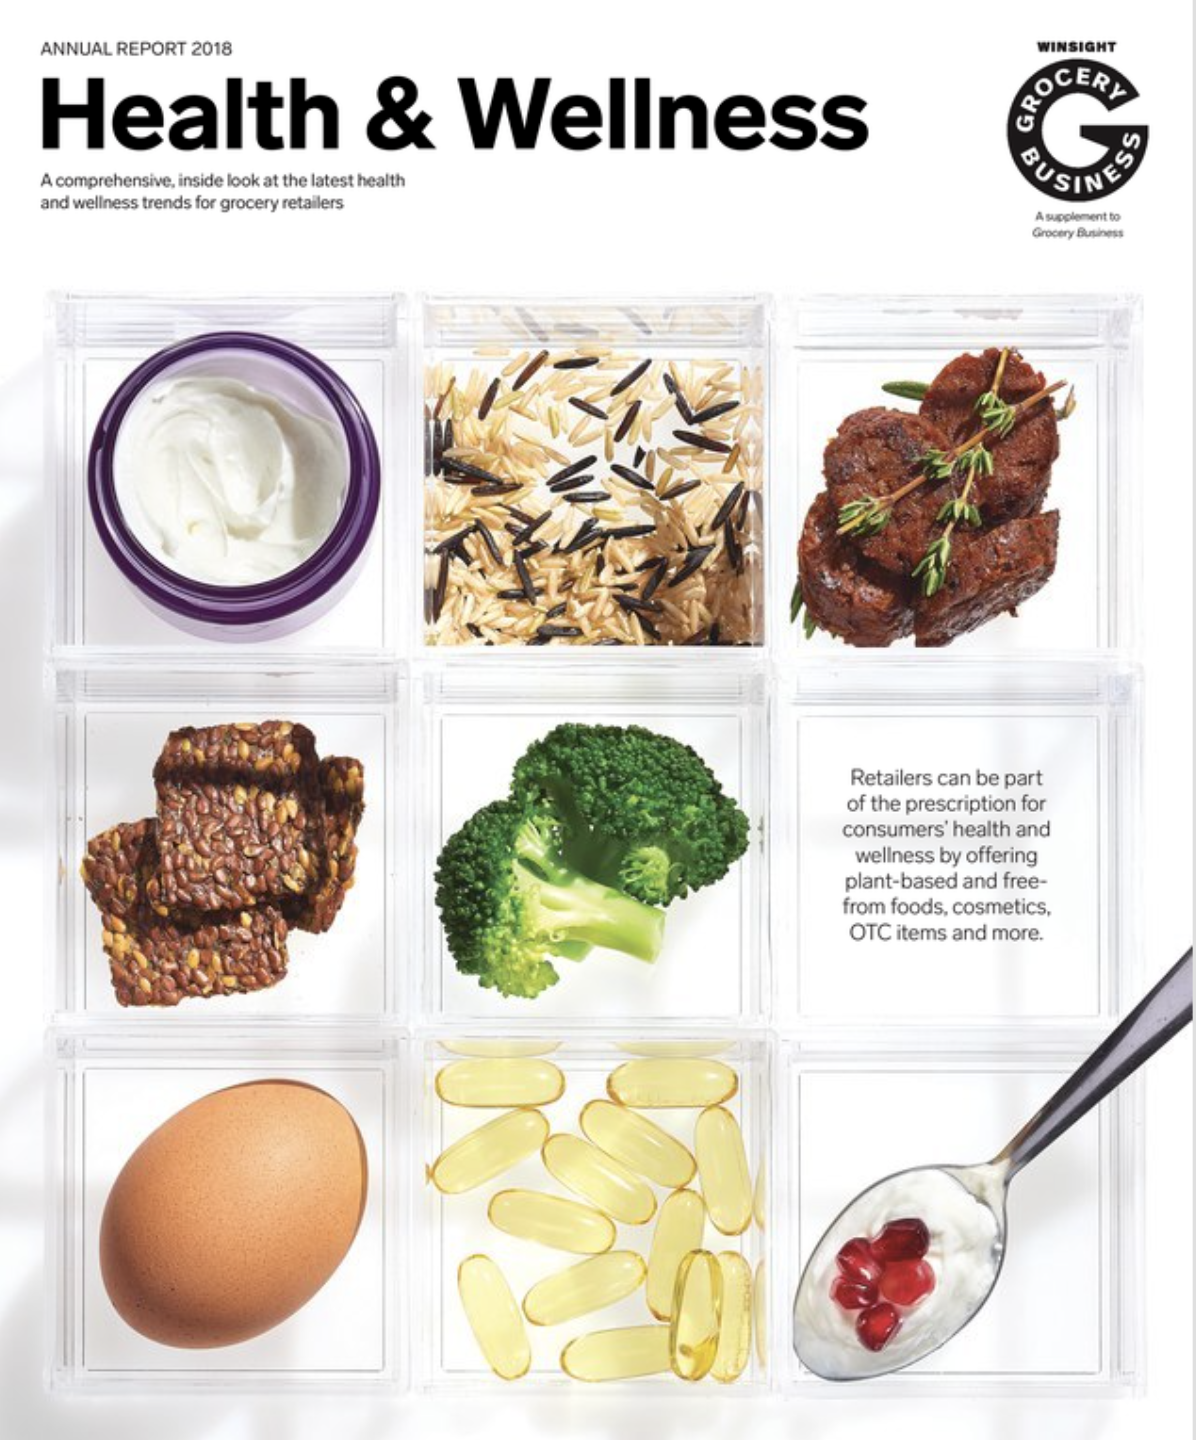 Winsight Grocery Business Magazine Heath & Wellness Handbook 2018 Issue